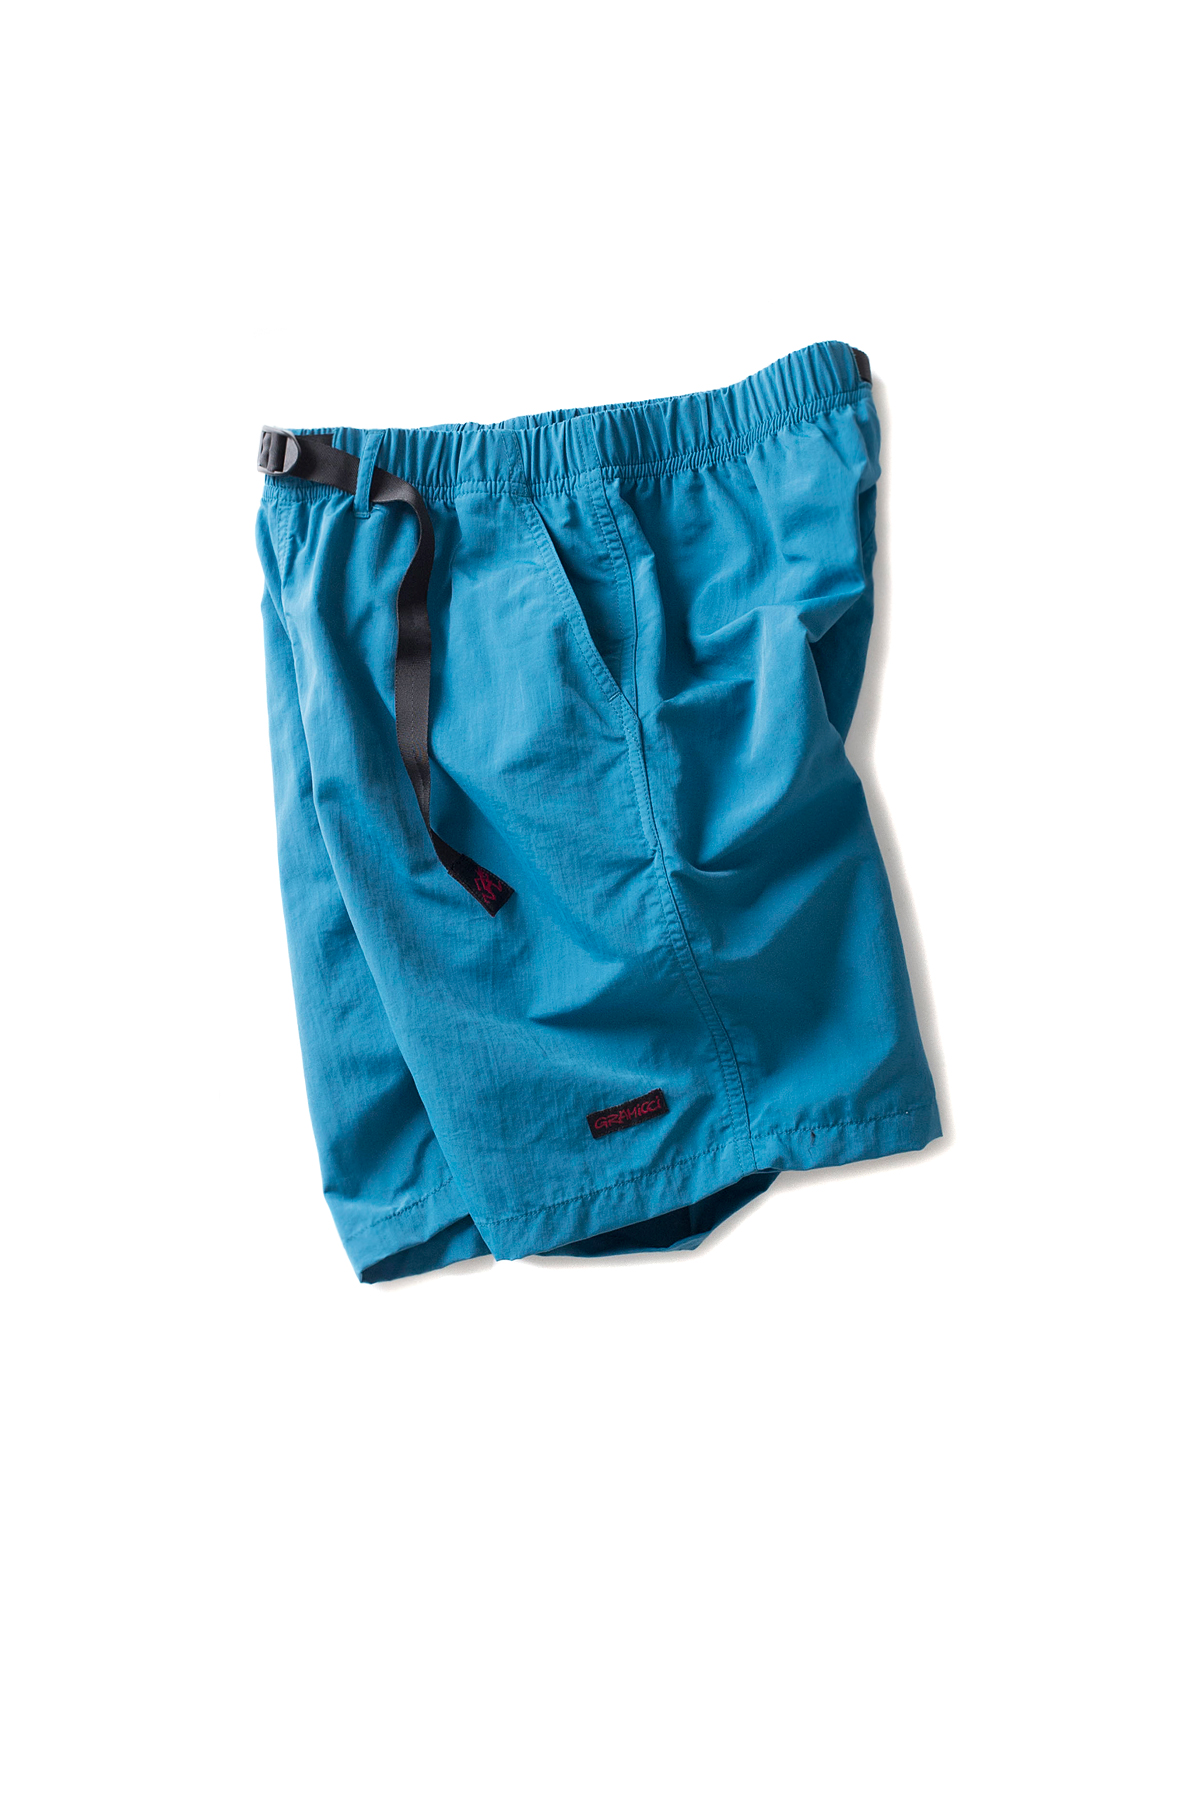 Gramicci : Packable Shorts (Turquoise)